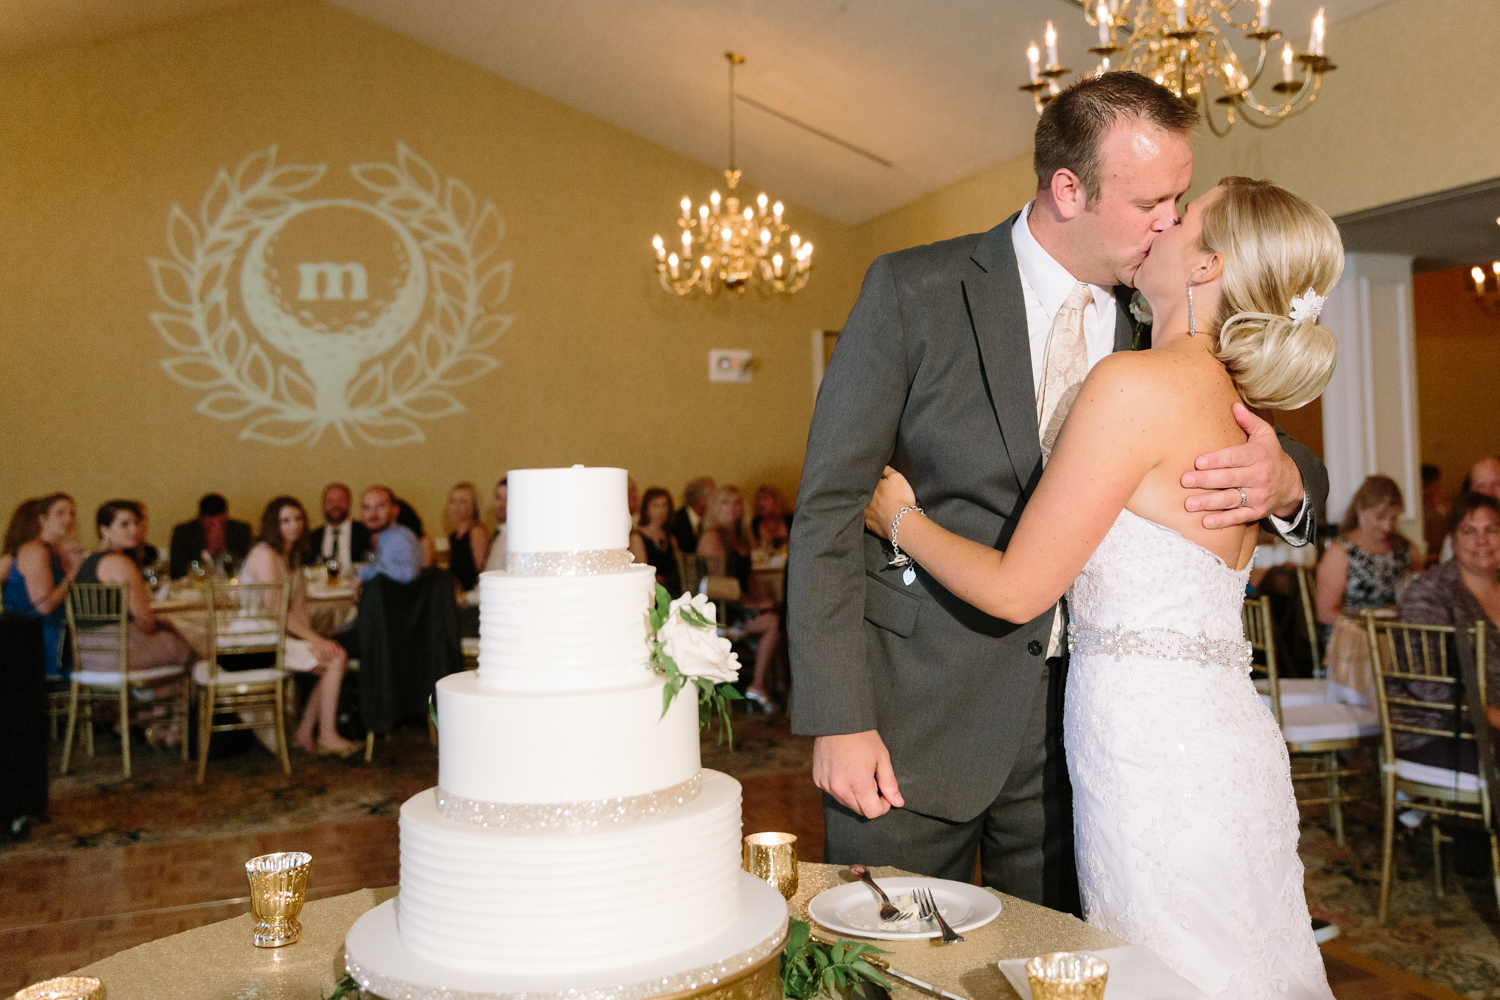 BridalPulse - Golf Lovers' Country Club Wedding - bride and groom wedding cake and monogram lighting on wall